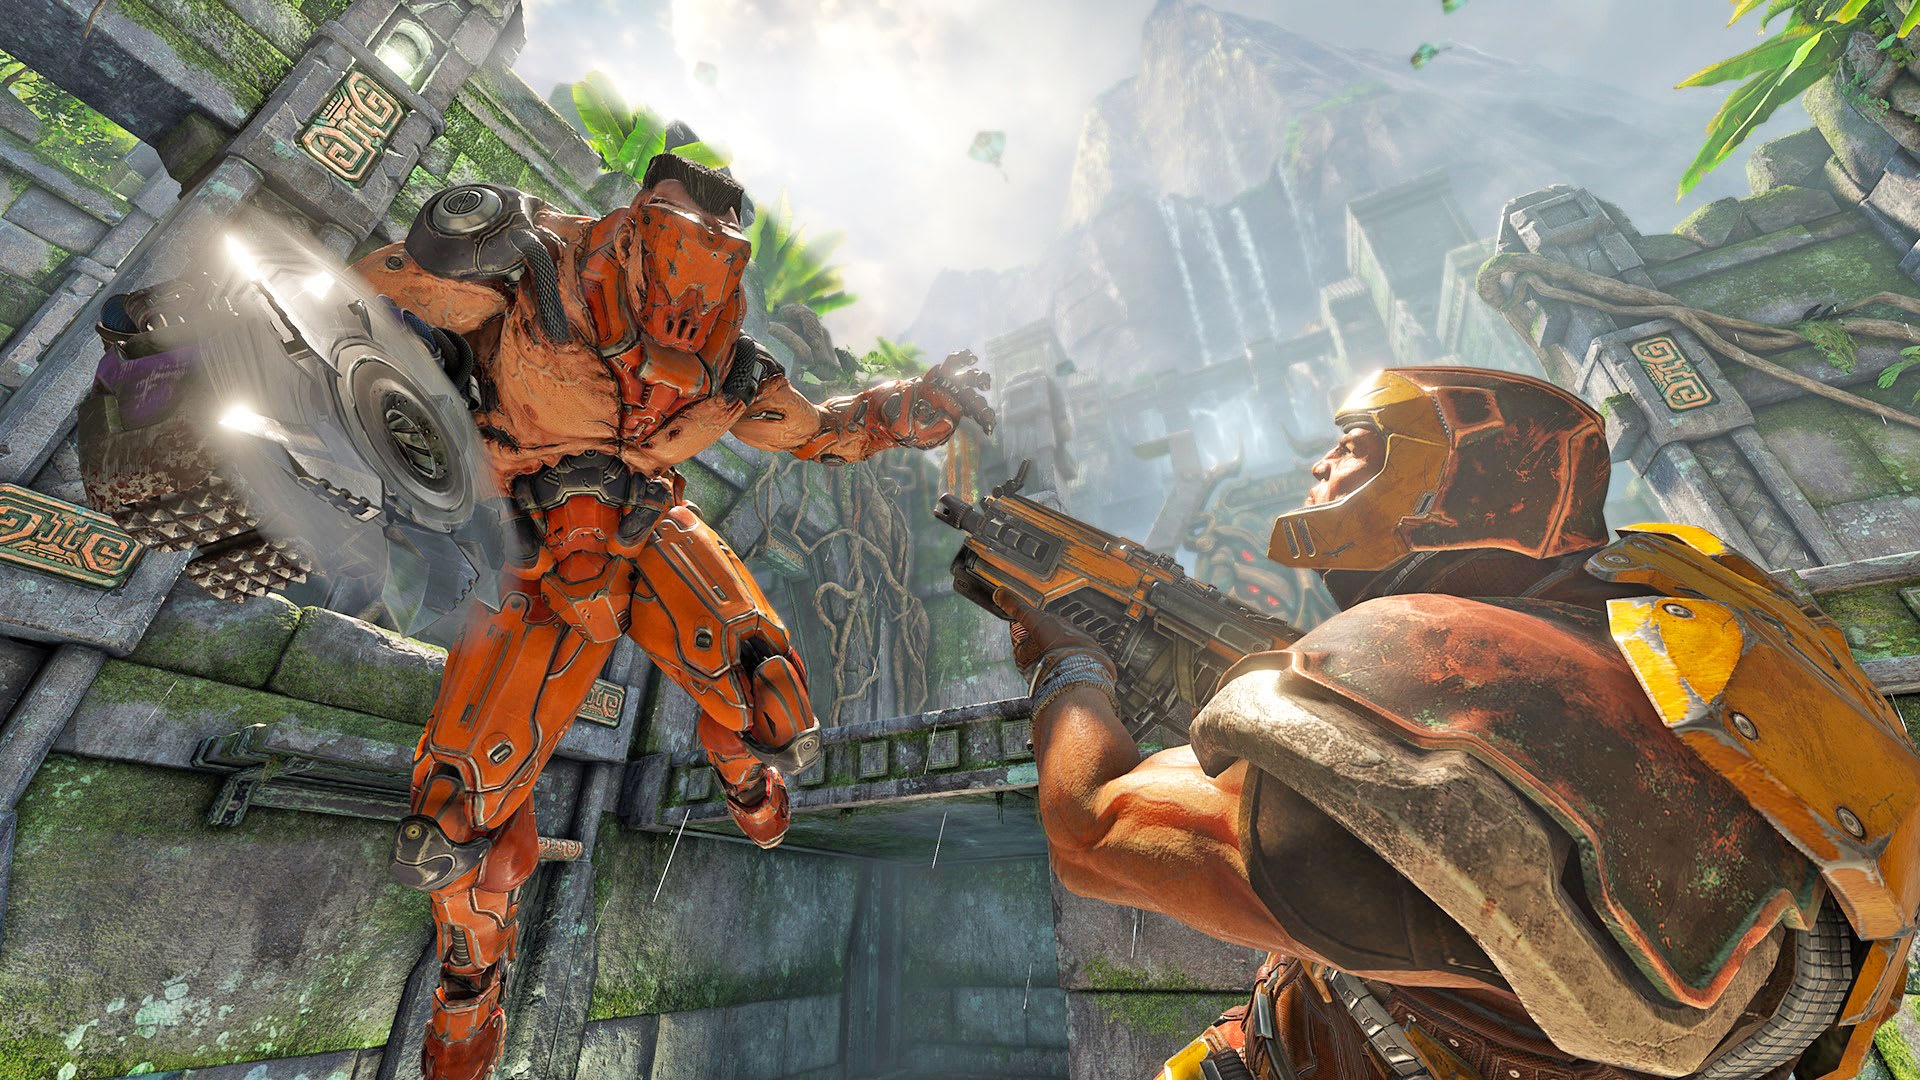 'Quake Champions' isn't finished, but you can play it ...